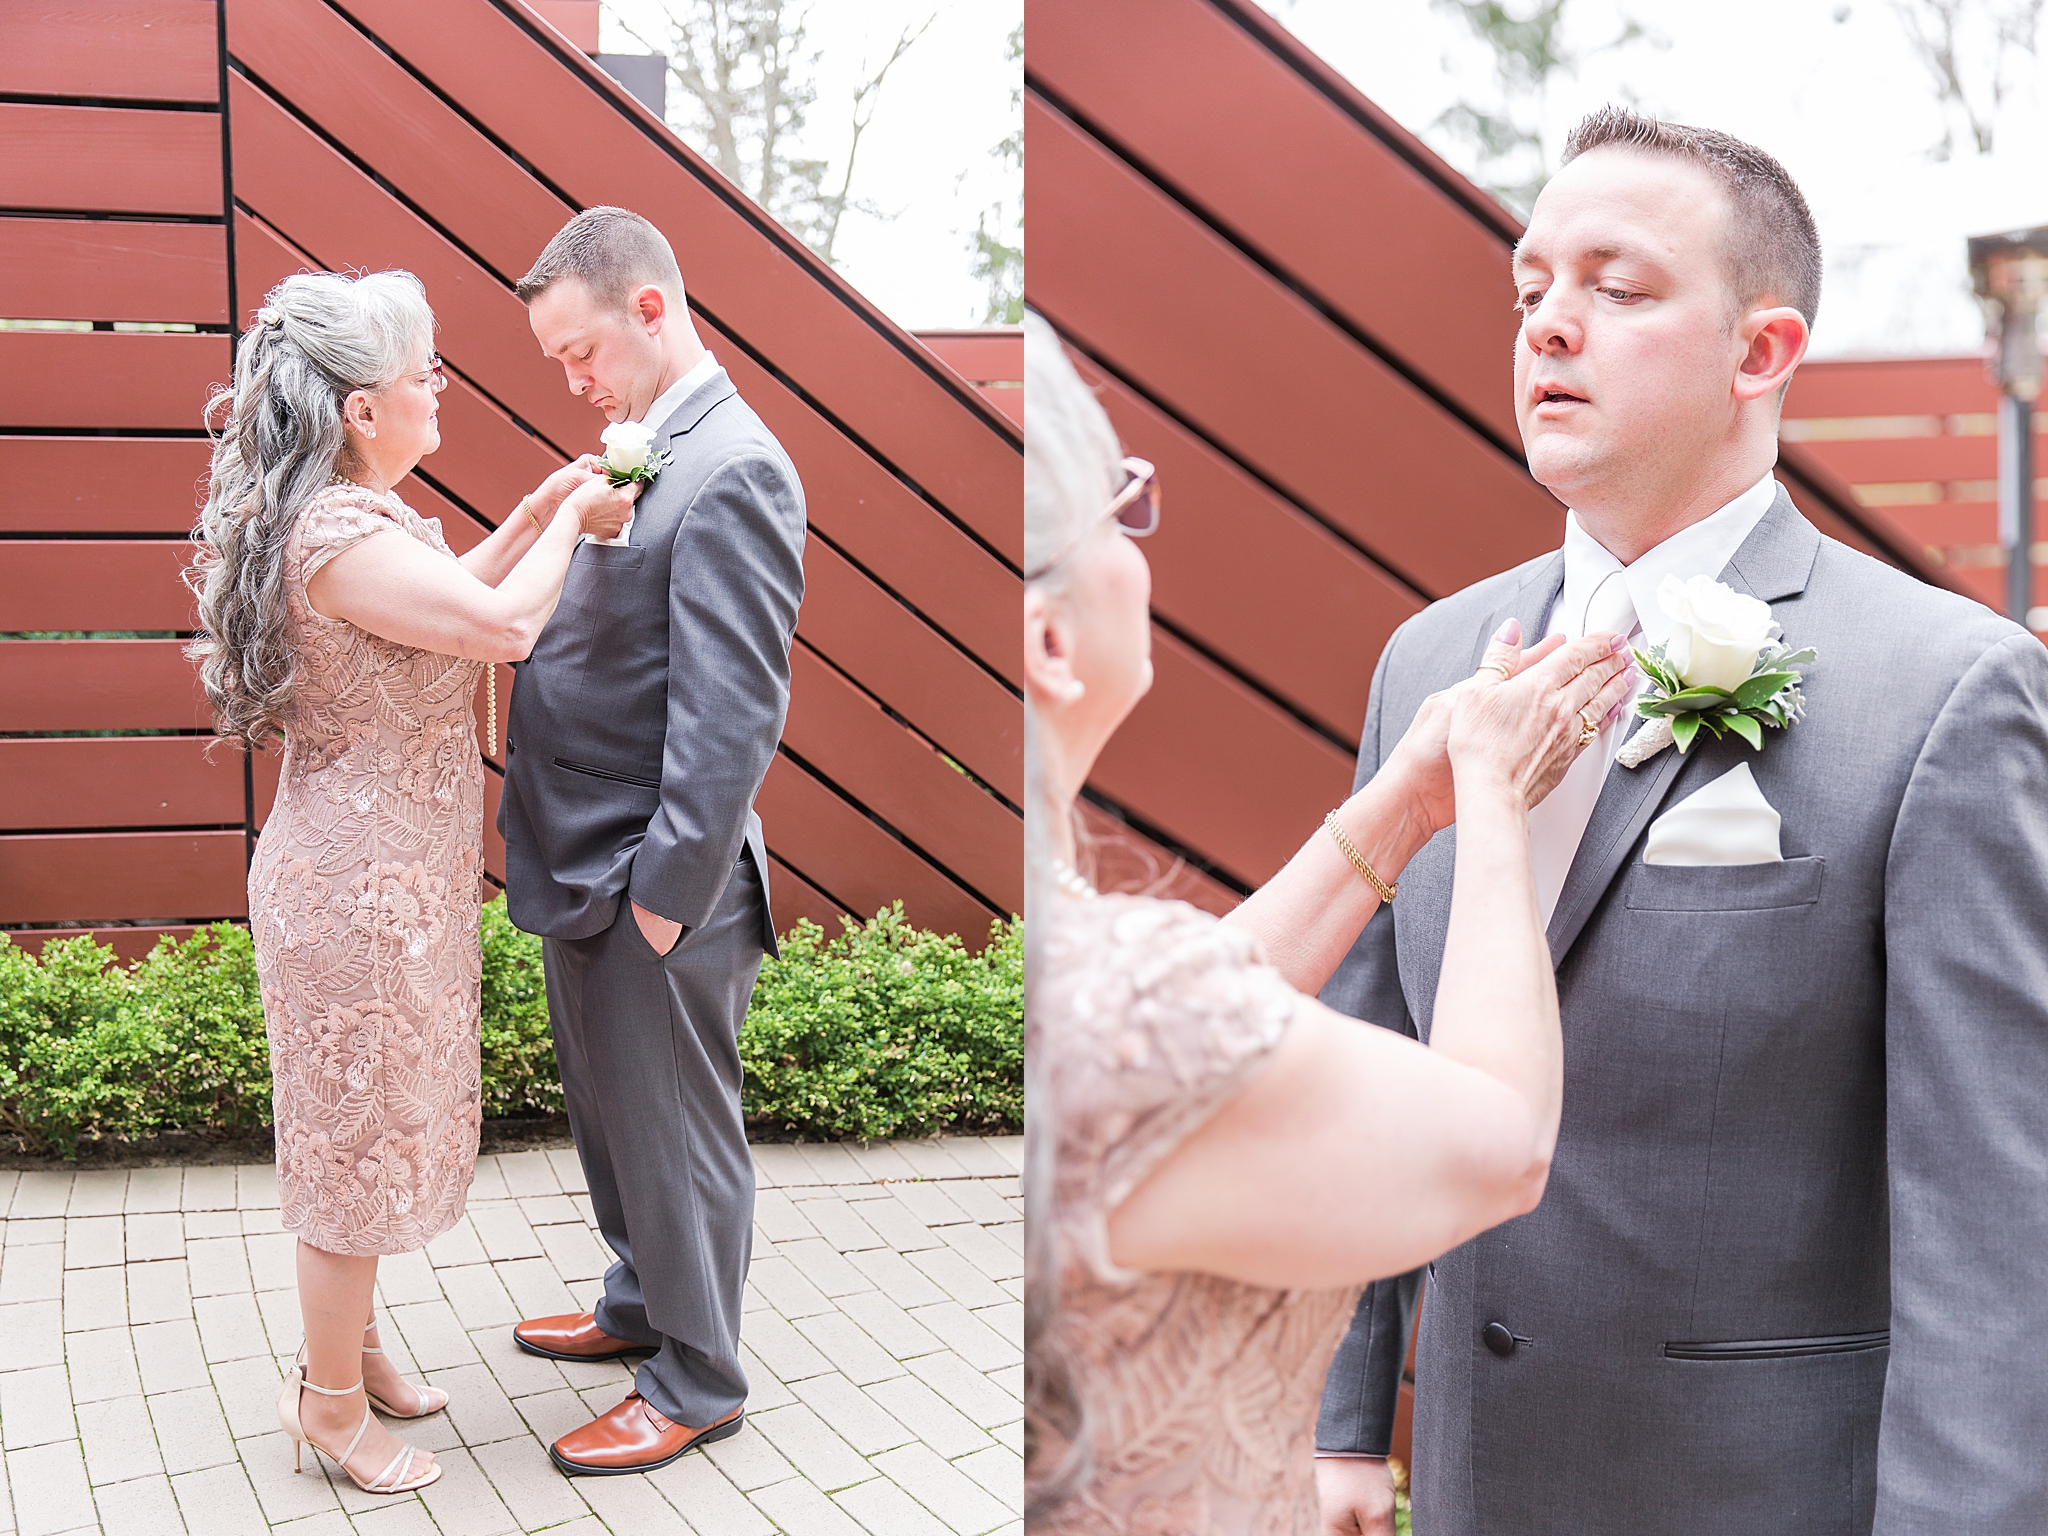 modern-romantic-wedding-photography-at-webers-in-ann-arbor-michigan-by-courtney-carolyn-photography_0017.jpg